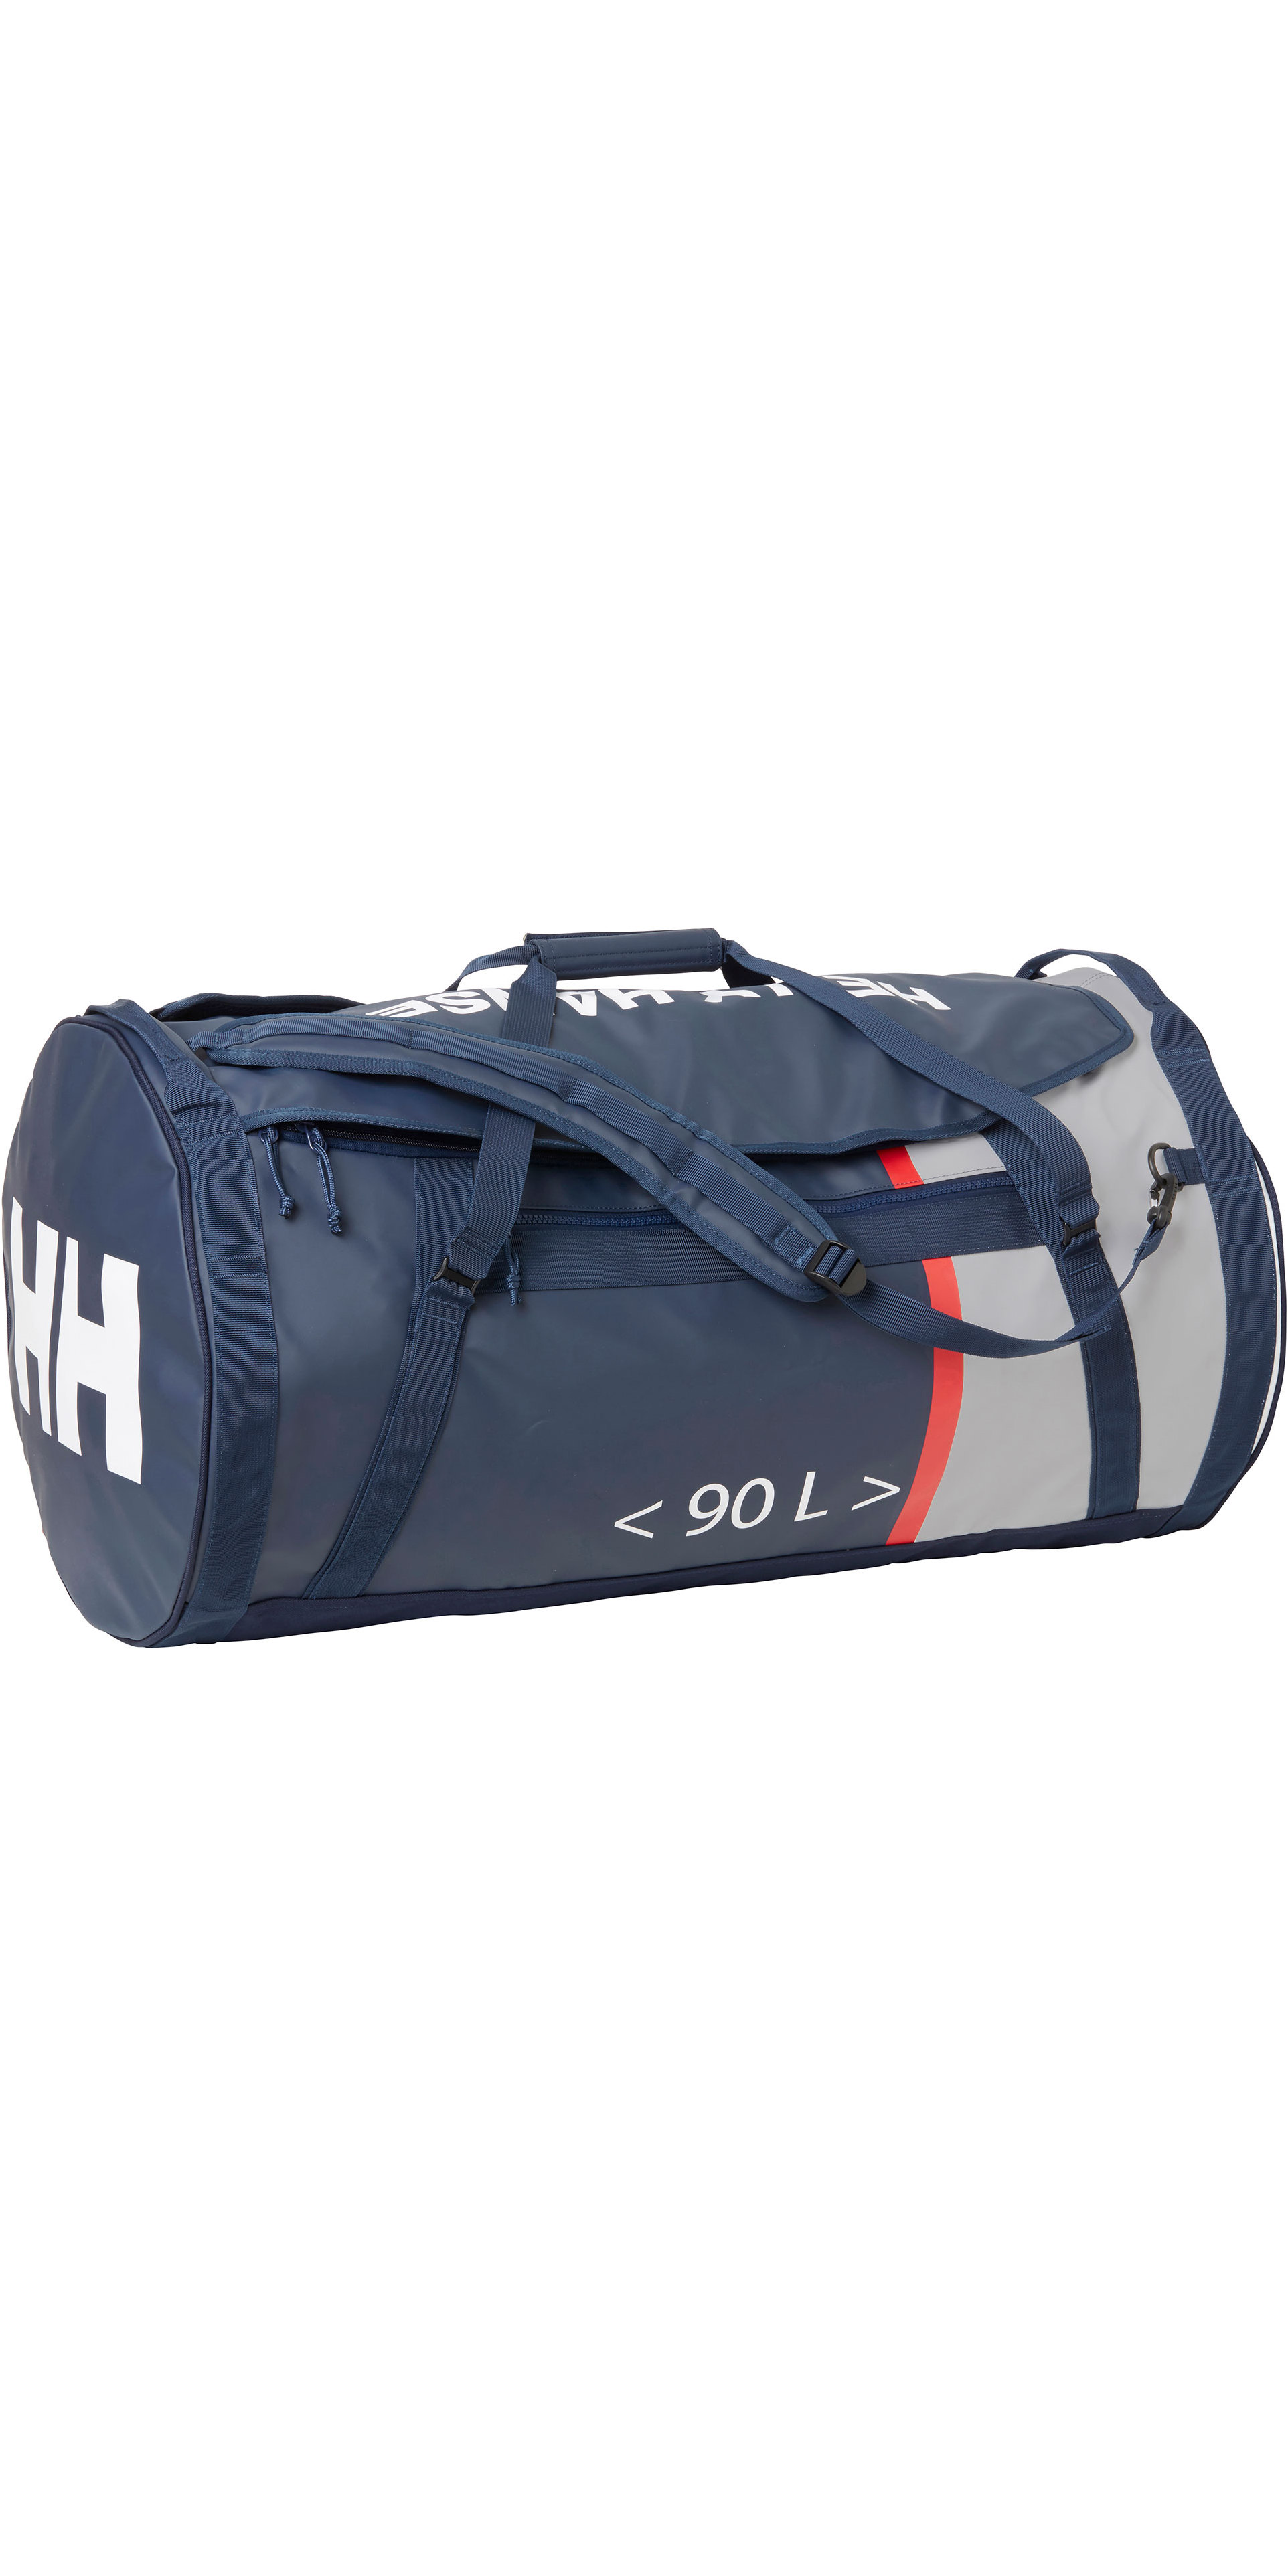 16a40e4537 2019 Helly Hansen 90L Duffel Bag 2 Evening Blue 68003 - Holdall - Luggage  Dry Bags - by Helly | Wetsuit Outlet